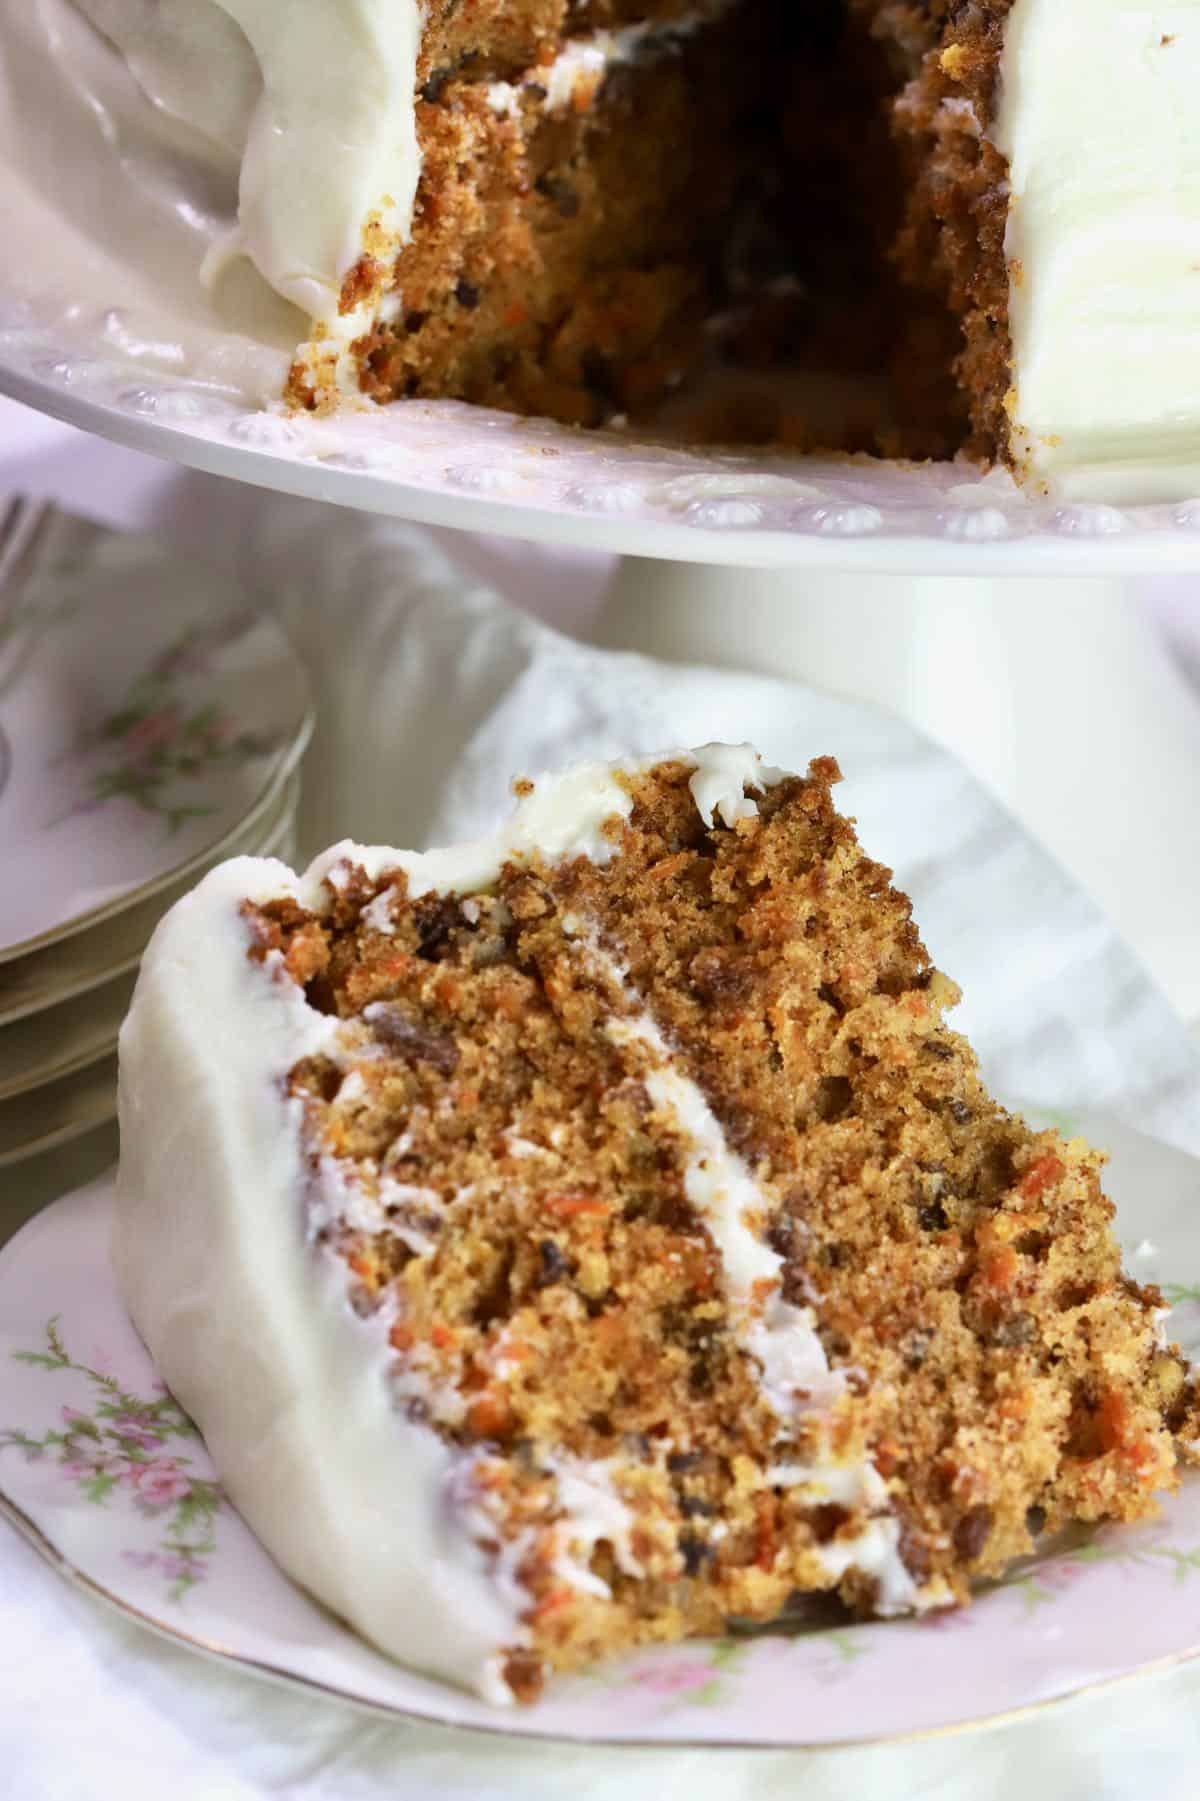 A slice of carrot cake with cream cheese icing.